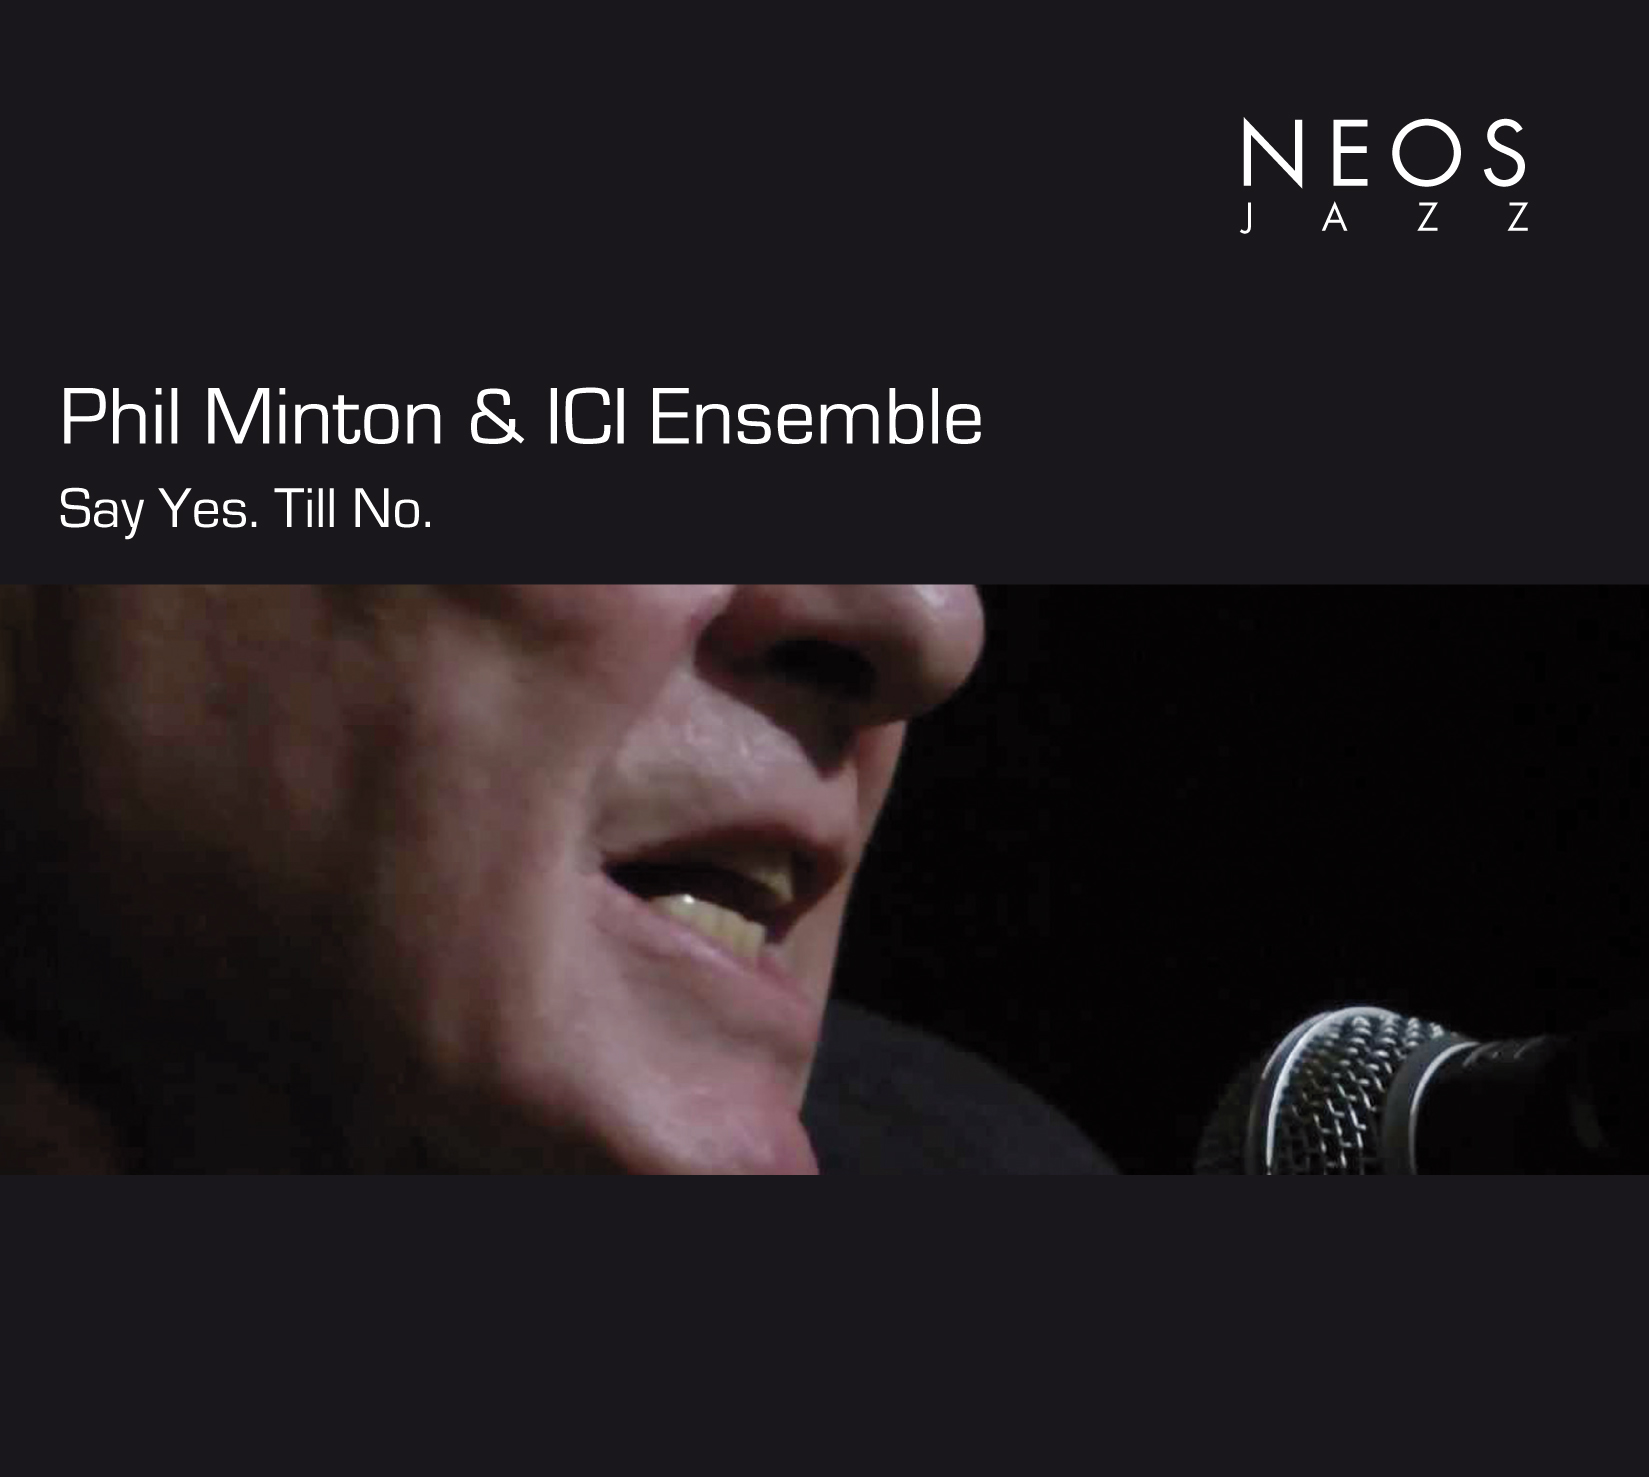 Phil Minton & ICI Ensemble // Say Yes. Till No.